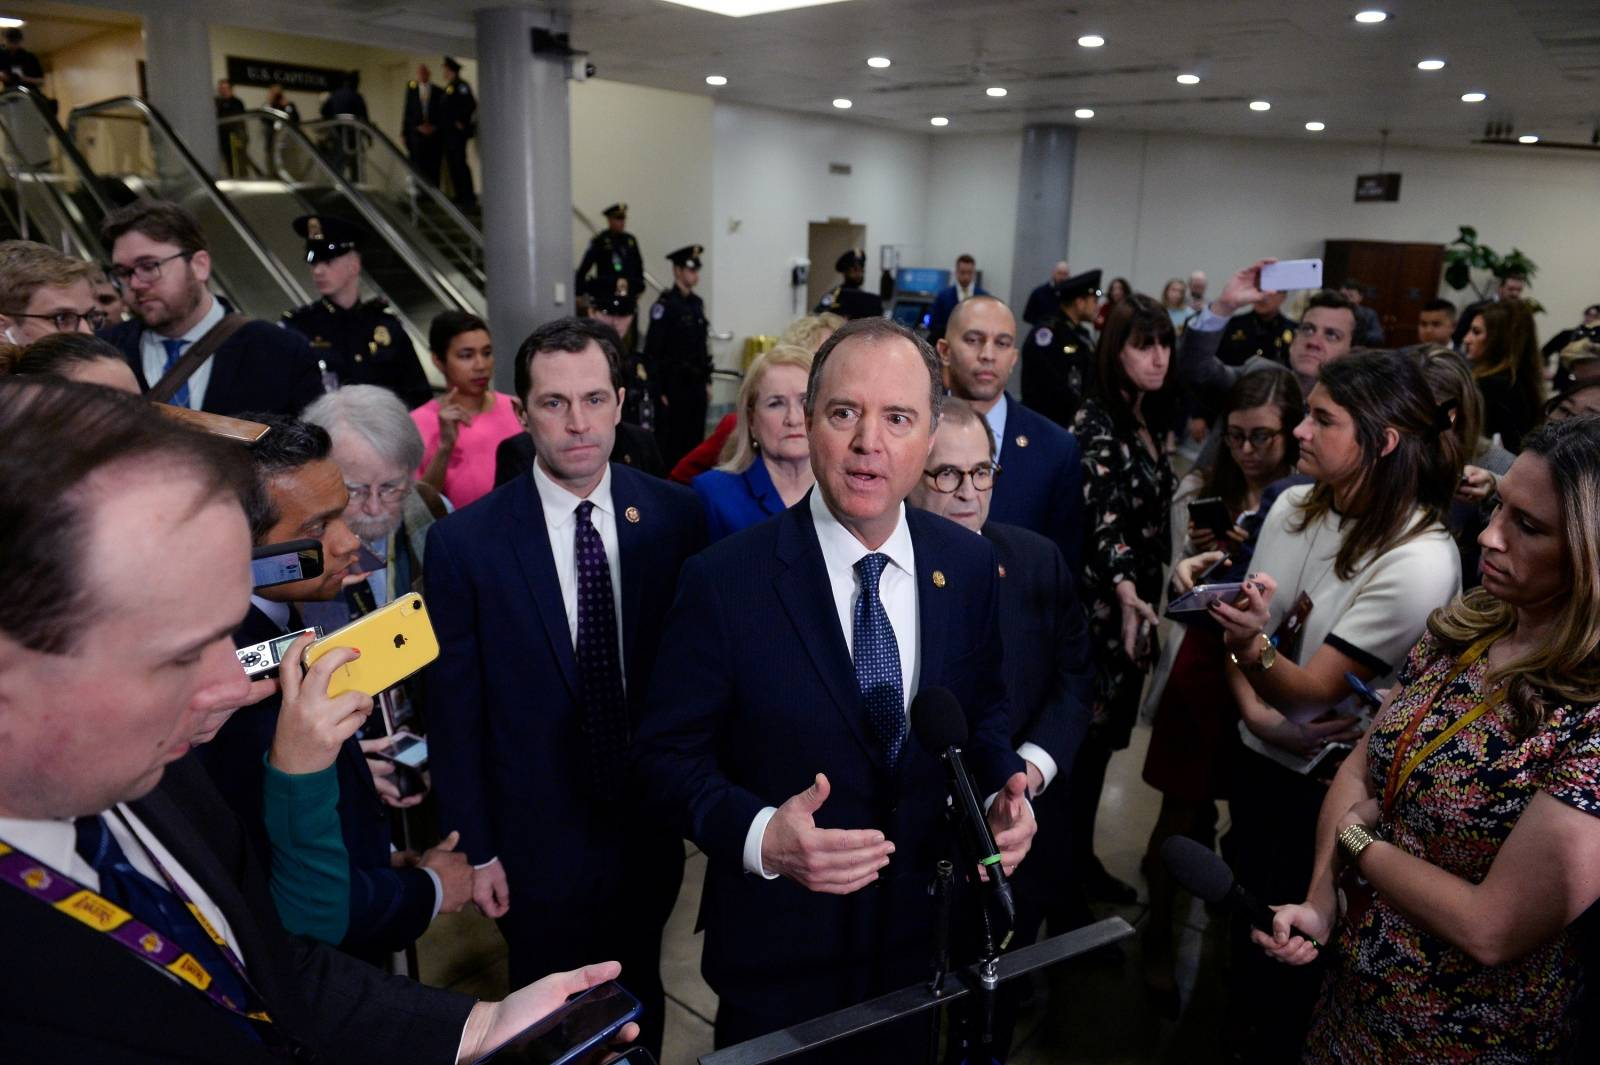 House Managers Rep. Adam Schiff (D-CA) speaks next to Rep. Jerry Nadler (D-NY) during a news conference near the Senate Subway to discuss the Senate impeachment trial of President Trump in Washington